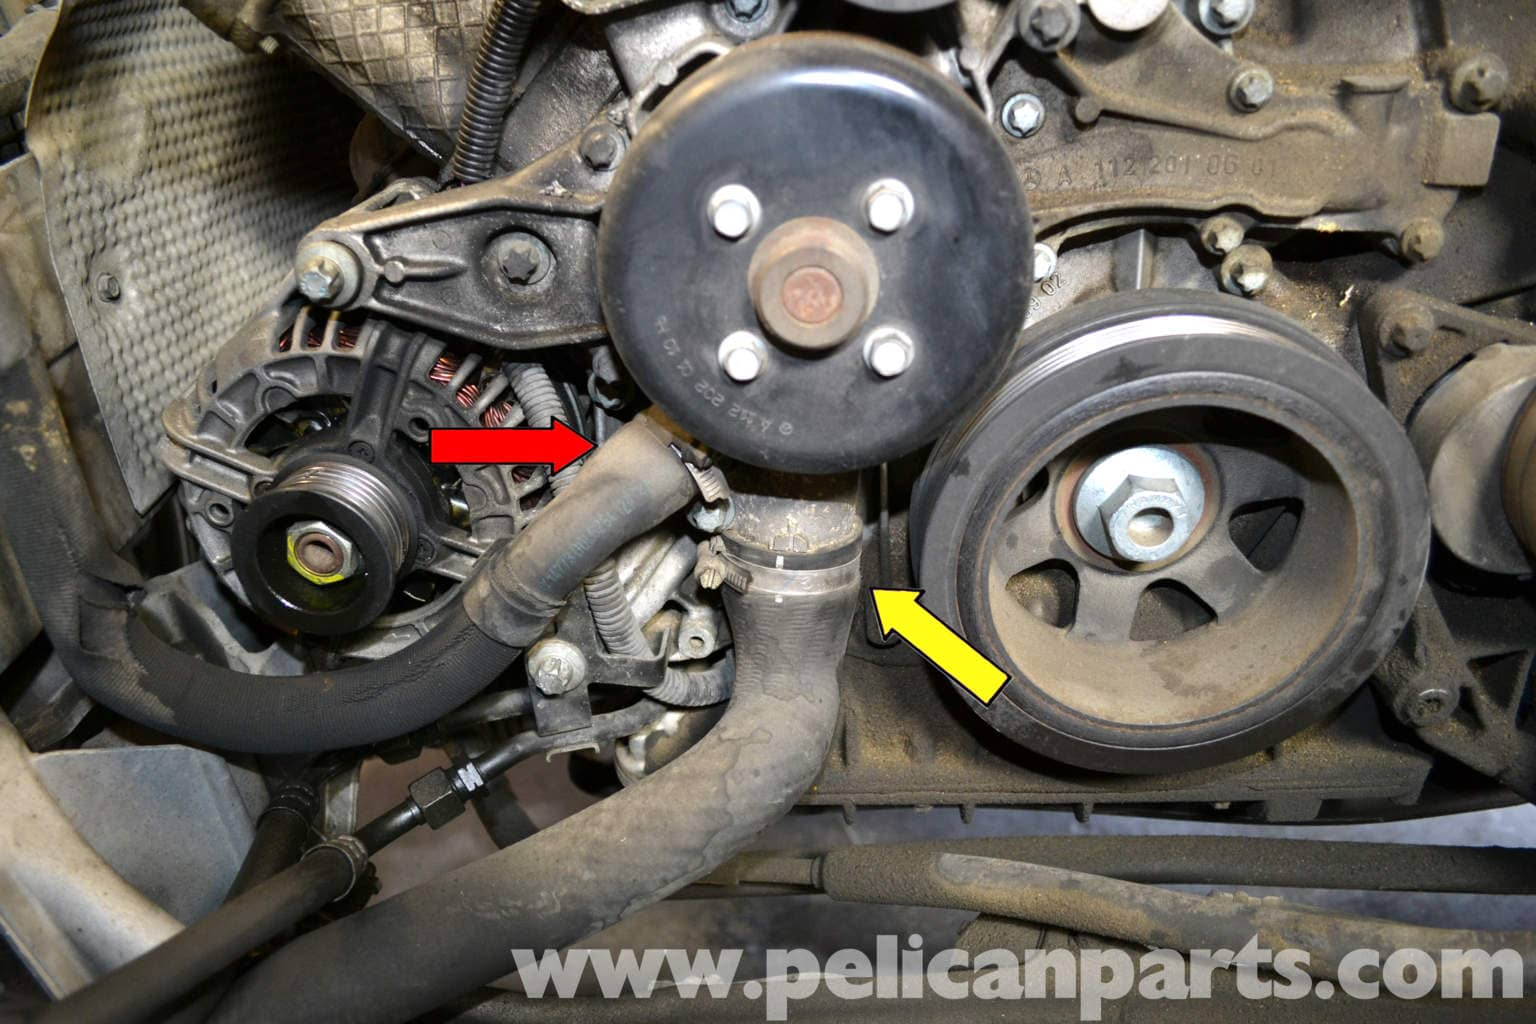 Mercedes-benz W203 Radiator Hose Replacement